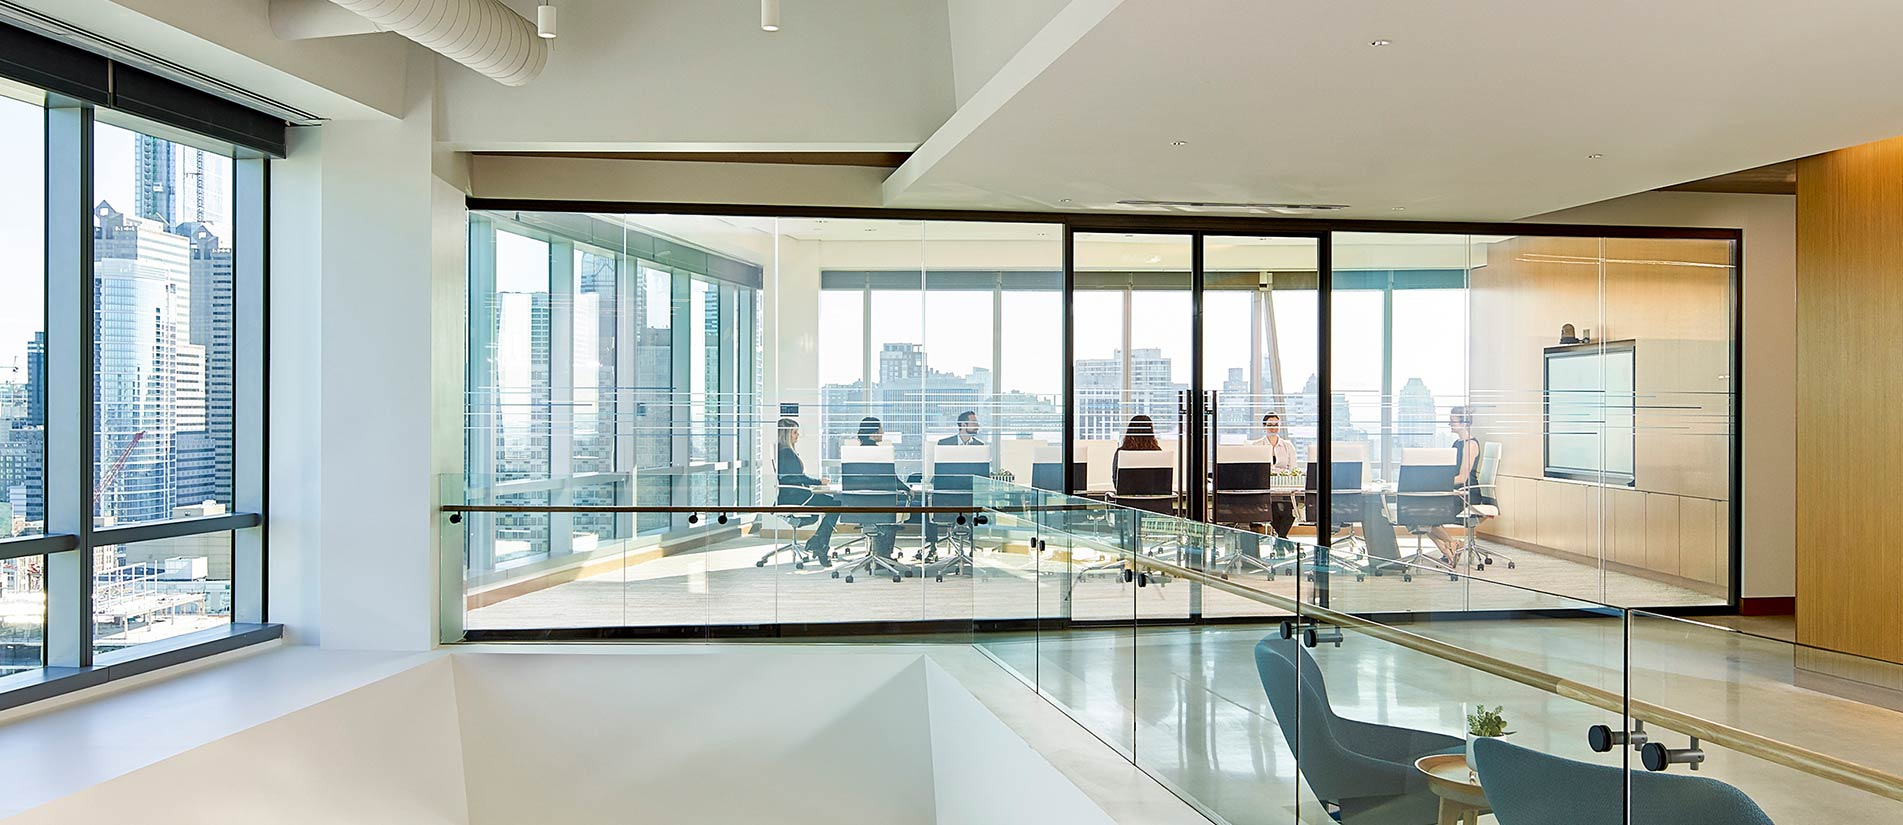 A double-glazed wall system creating a conference room with an overlooking view of the city